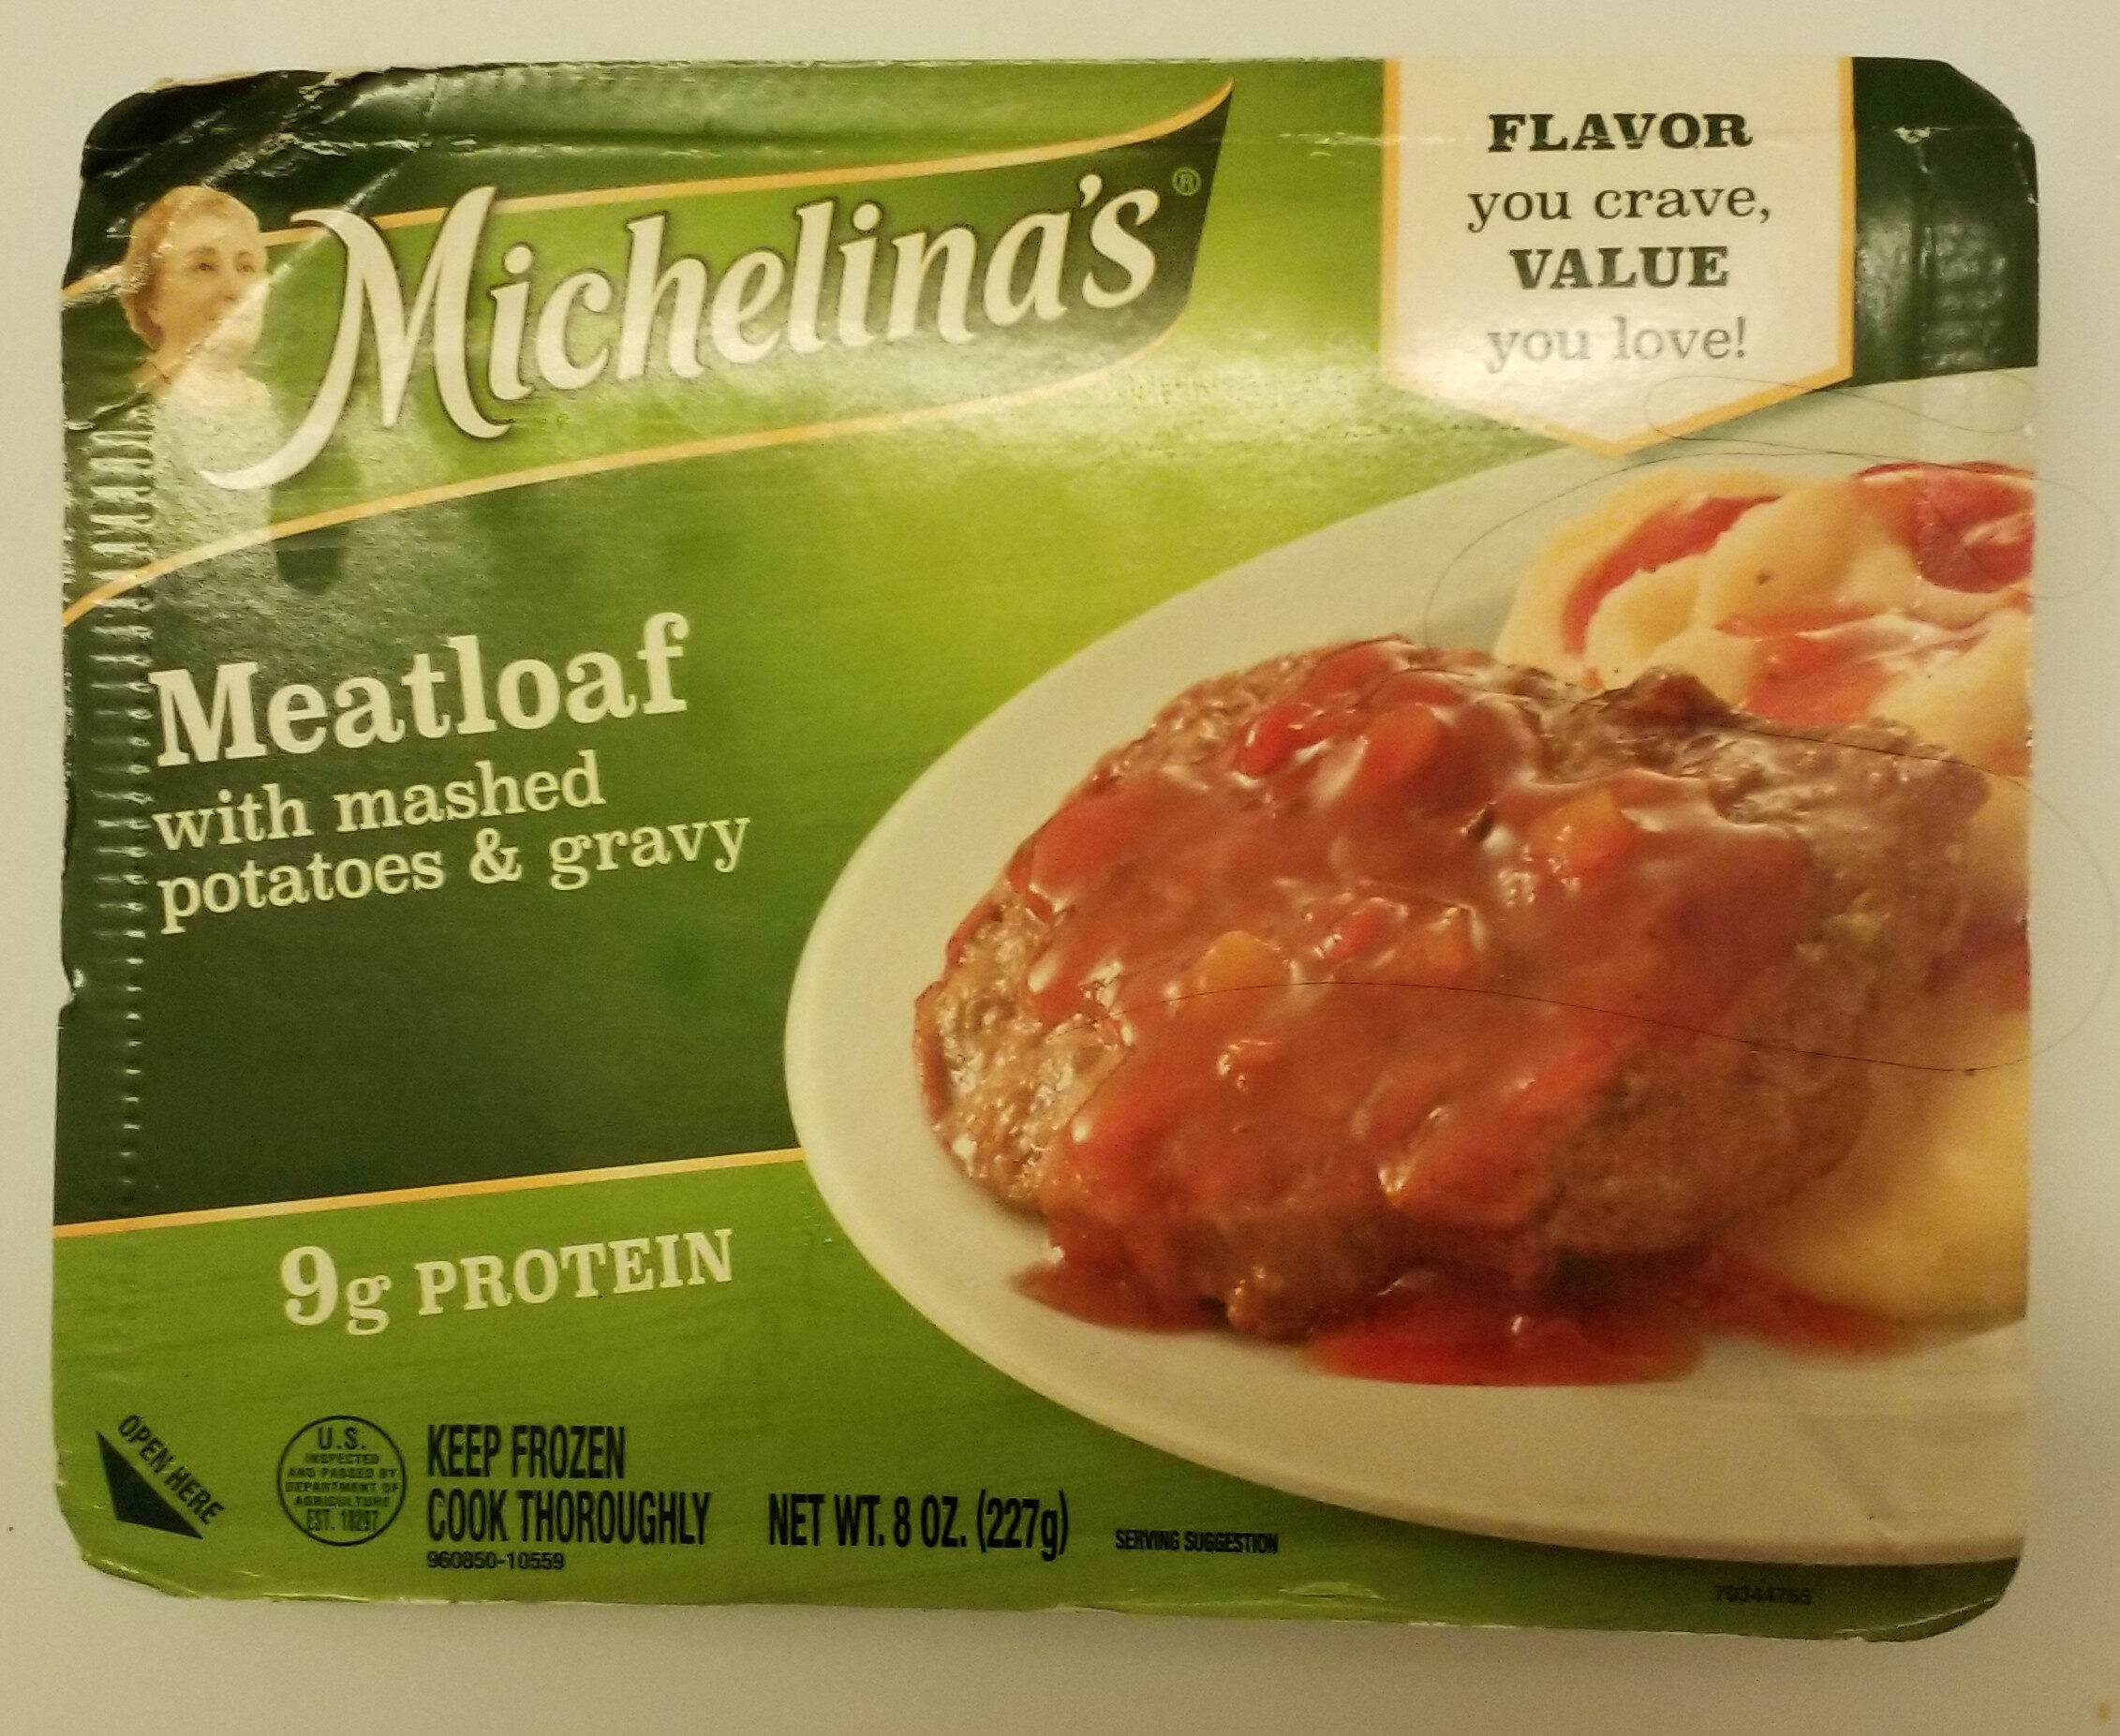 Mealtoaf with mashed potatoes & gravy - Product - en